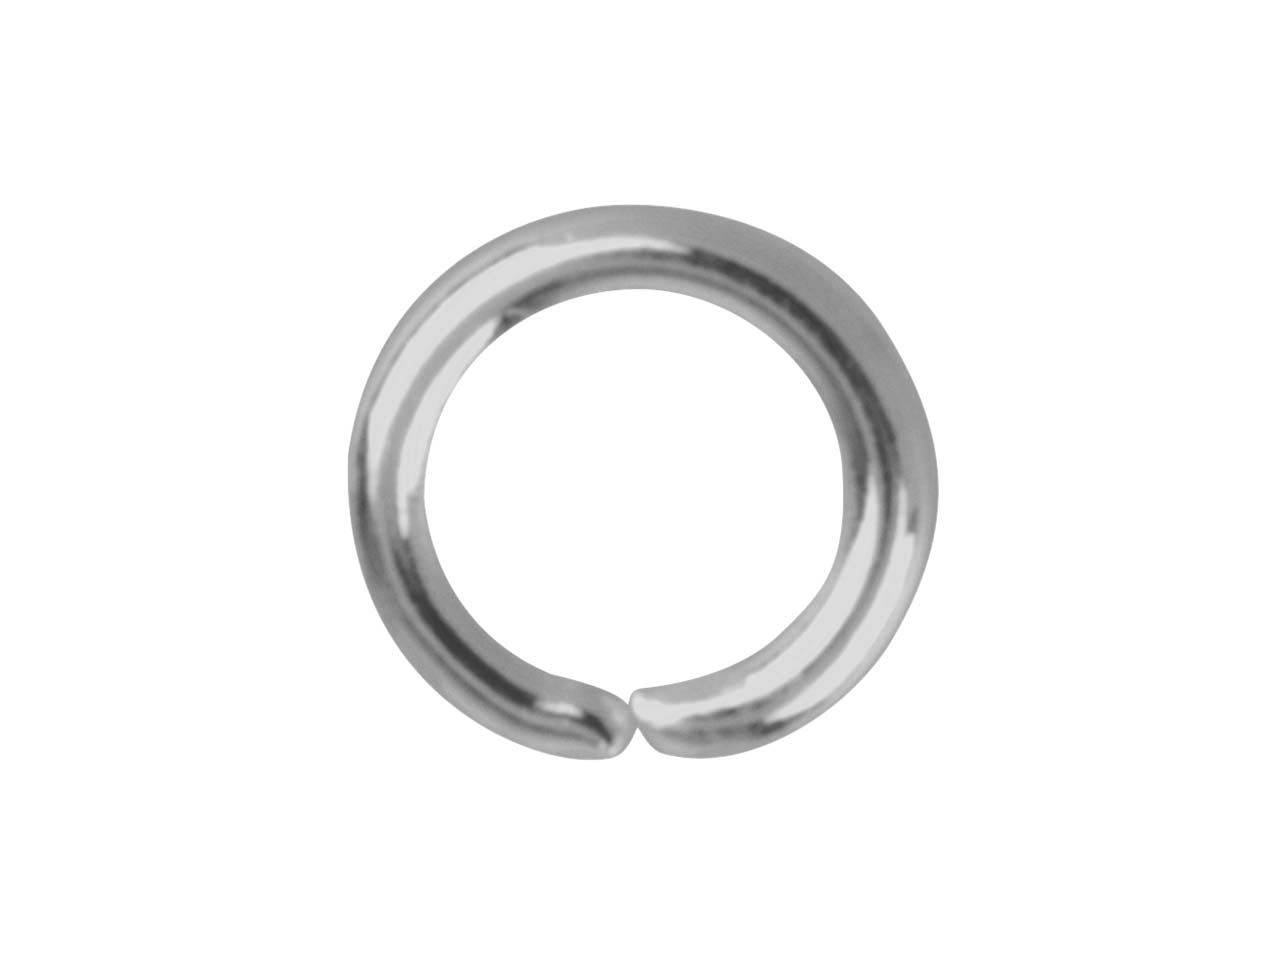 Stainless Steel Jump Ring Round    Pack of 100, 5mm Gauge 0.95mm